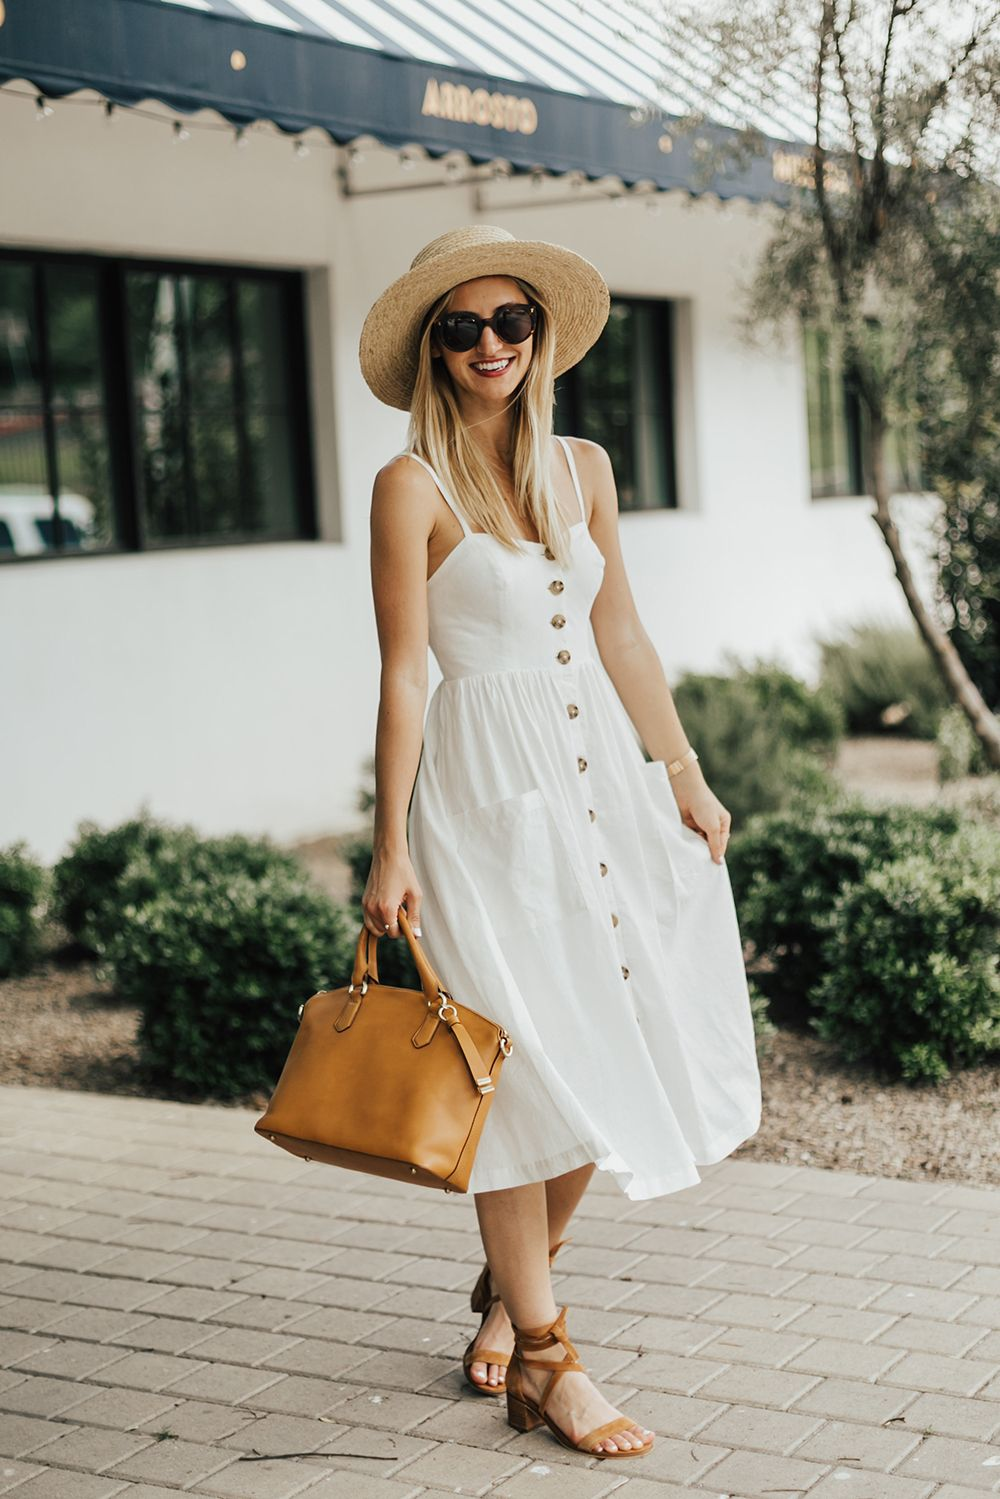 What To Wear To A Spring Picnic This Year Seasonoutfit Picnic Outfits Stylish Spring Outfit Fashion [ 1499 x 1000 Pixel ]